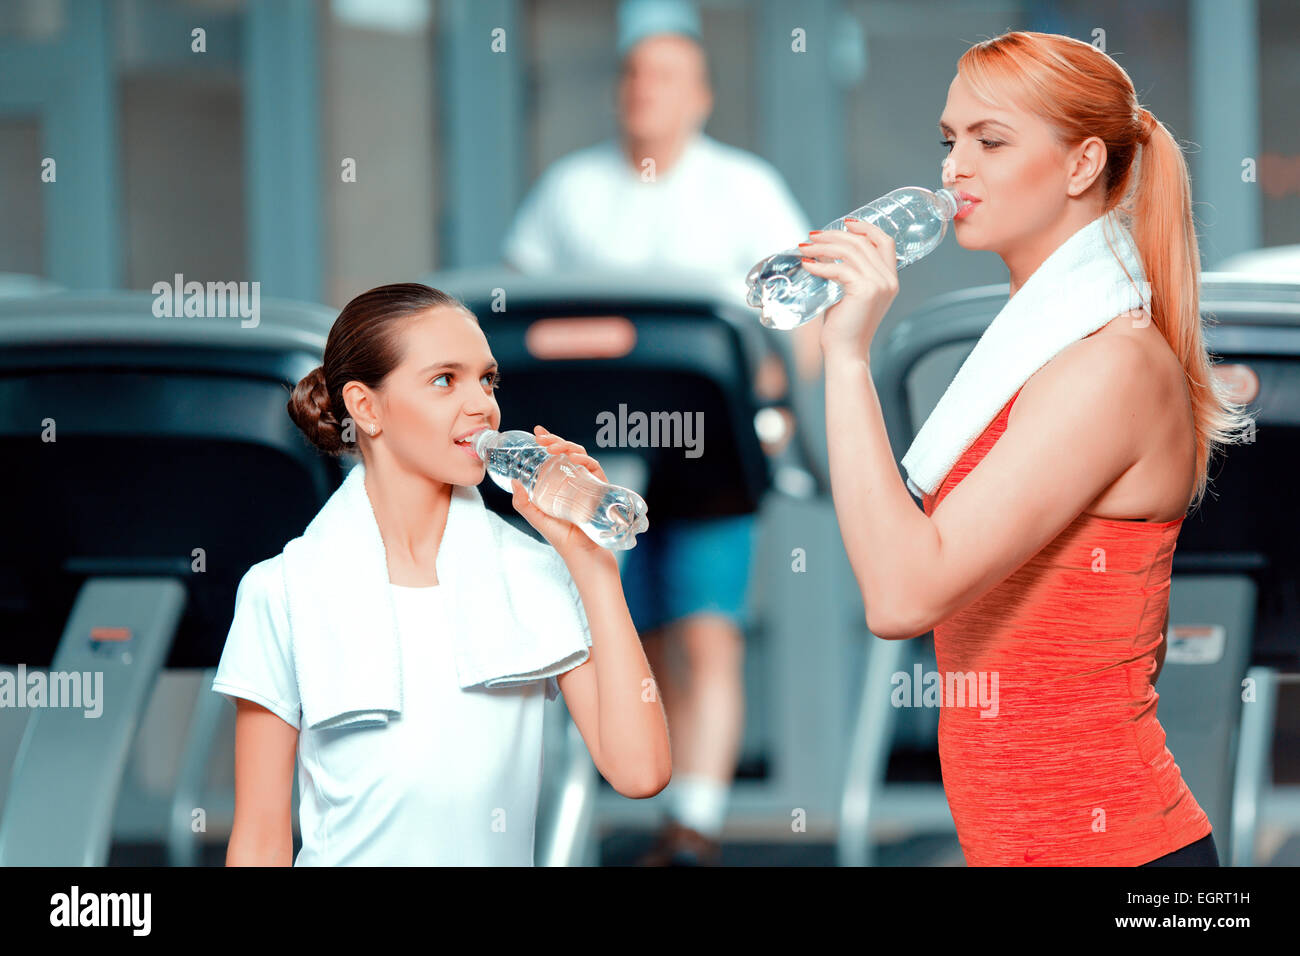 Mother and daughter at sports club - Stock Image